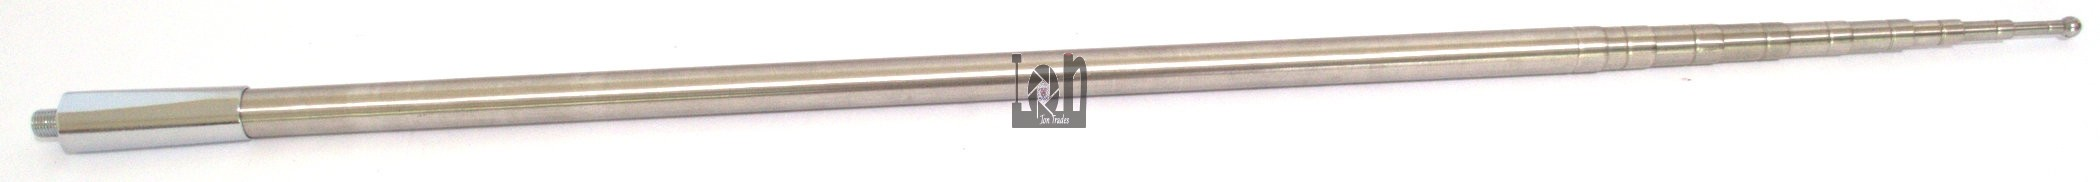 Extra Long Telescoping Antenna Stainless Steel SS 16.9ft